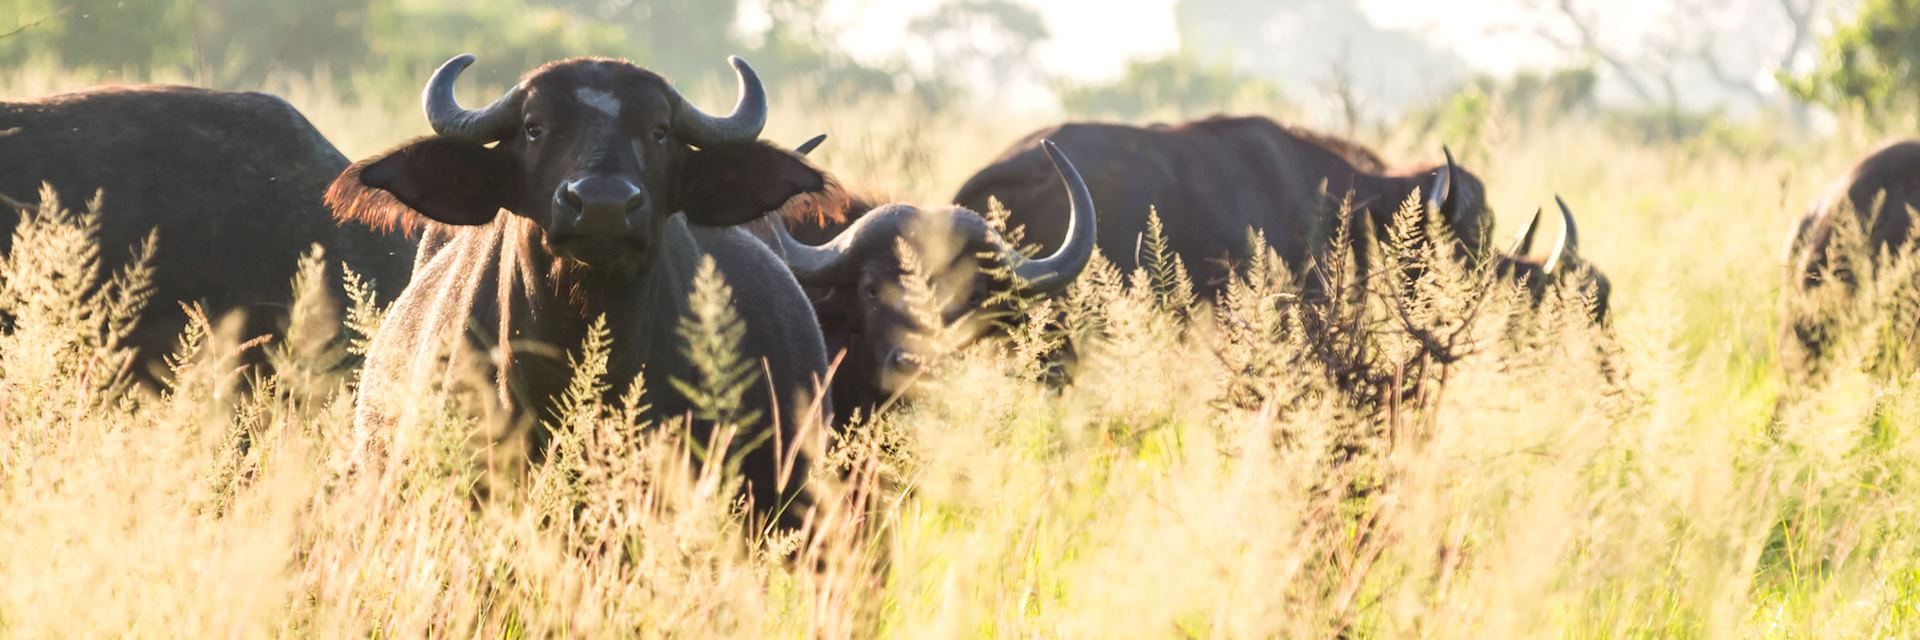 Cape buffalo, Saadani National Park